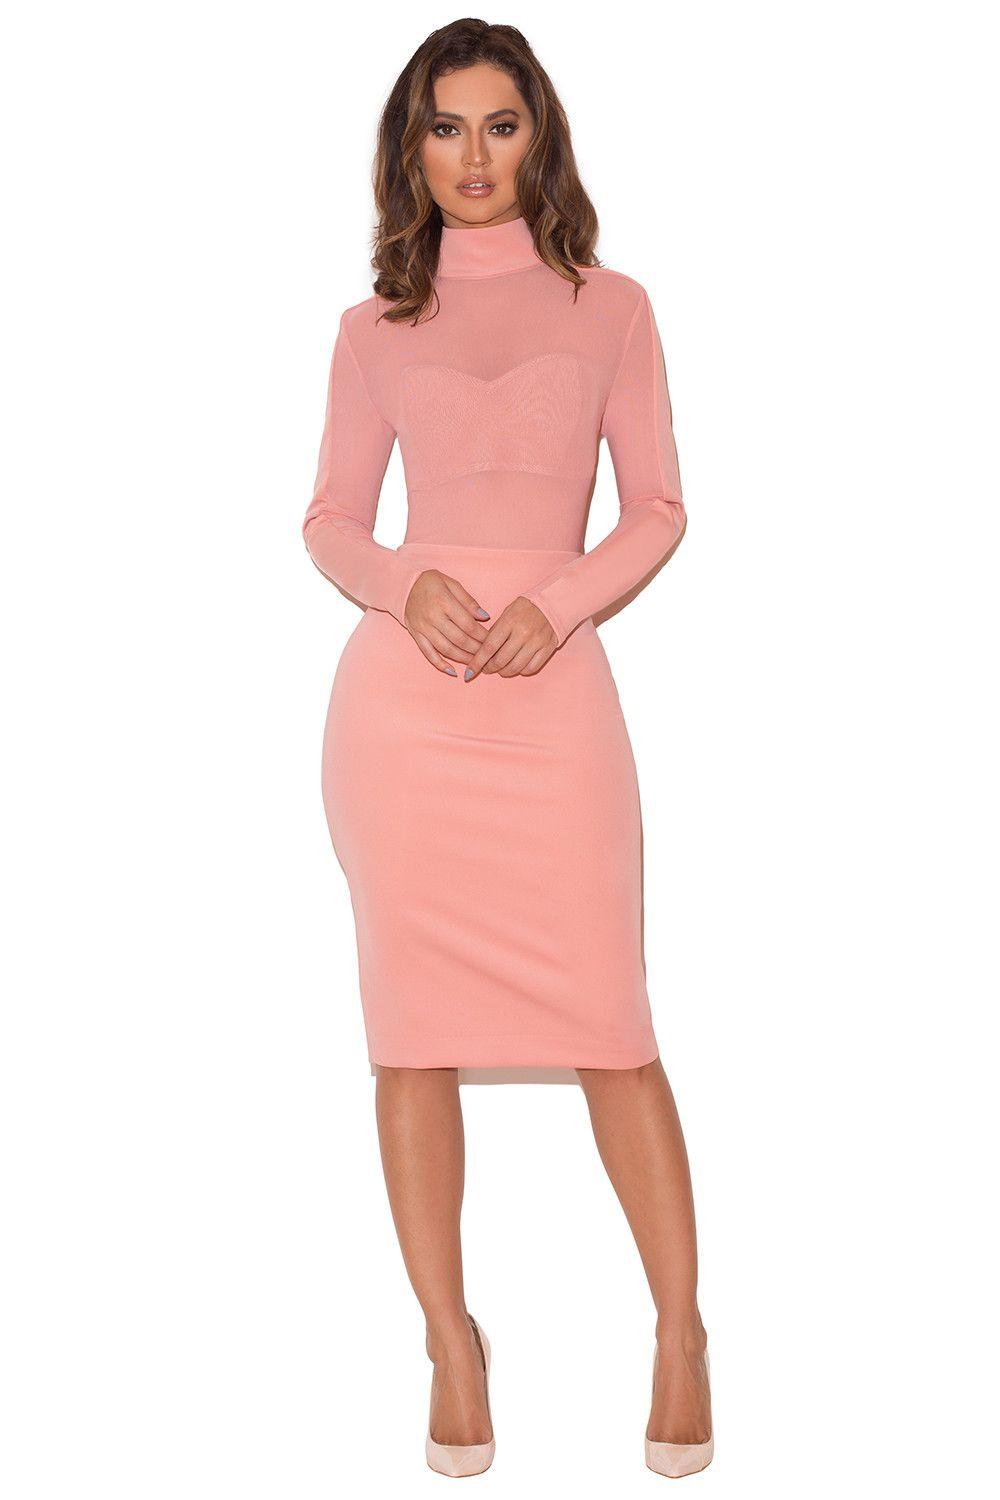 Clothing bodycon dresses usajidau pink stretch crepe jersey long